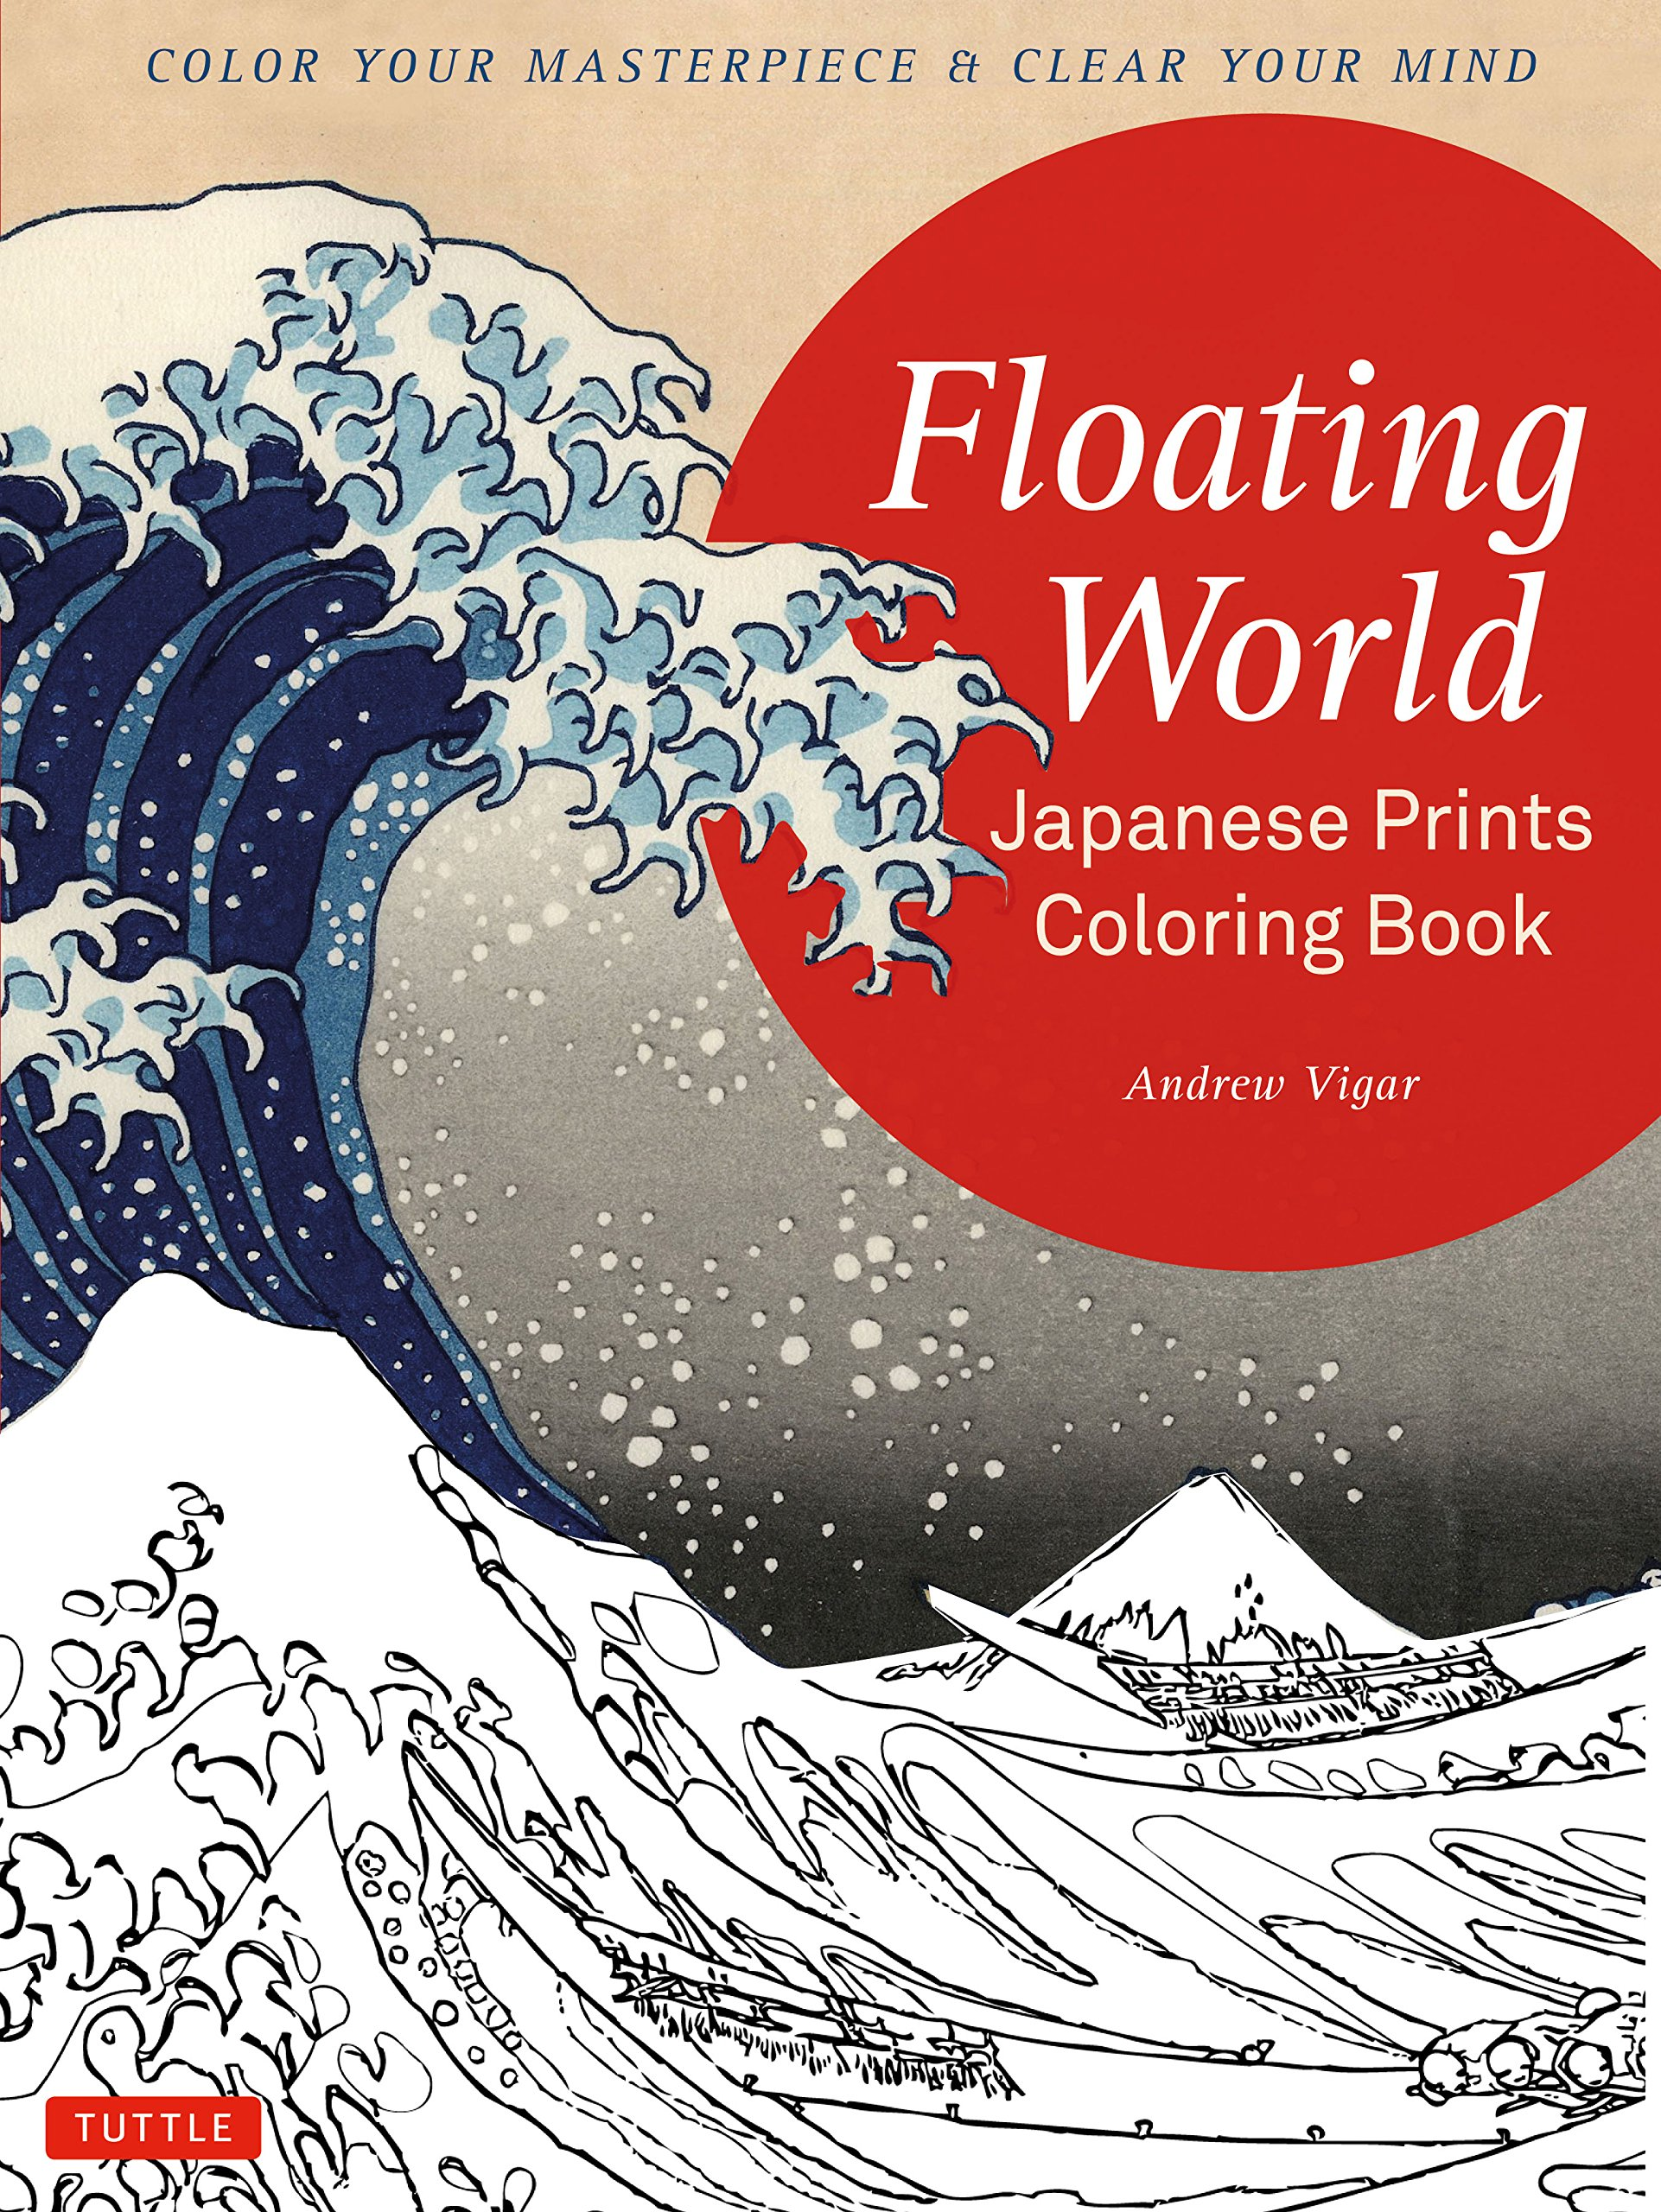 A Coloring Book for Adults /& Teens with Japan Themes such as Samurai Dragons /& Sumos Geishas A Japanese Woodblock Coloring Book Ukiyo-e